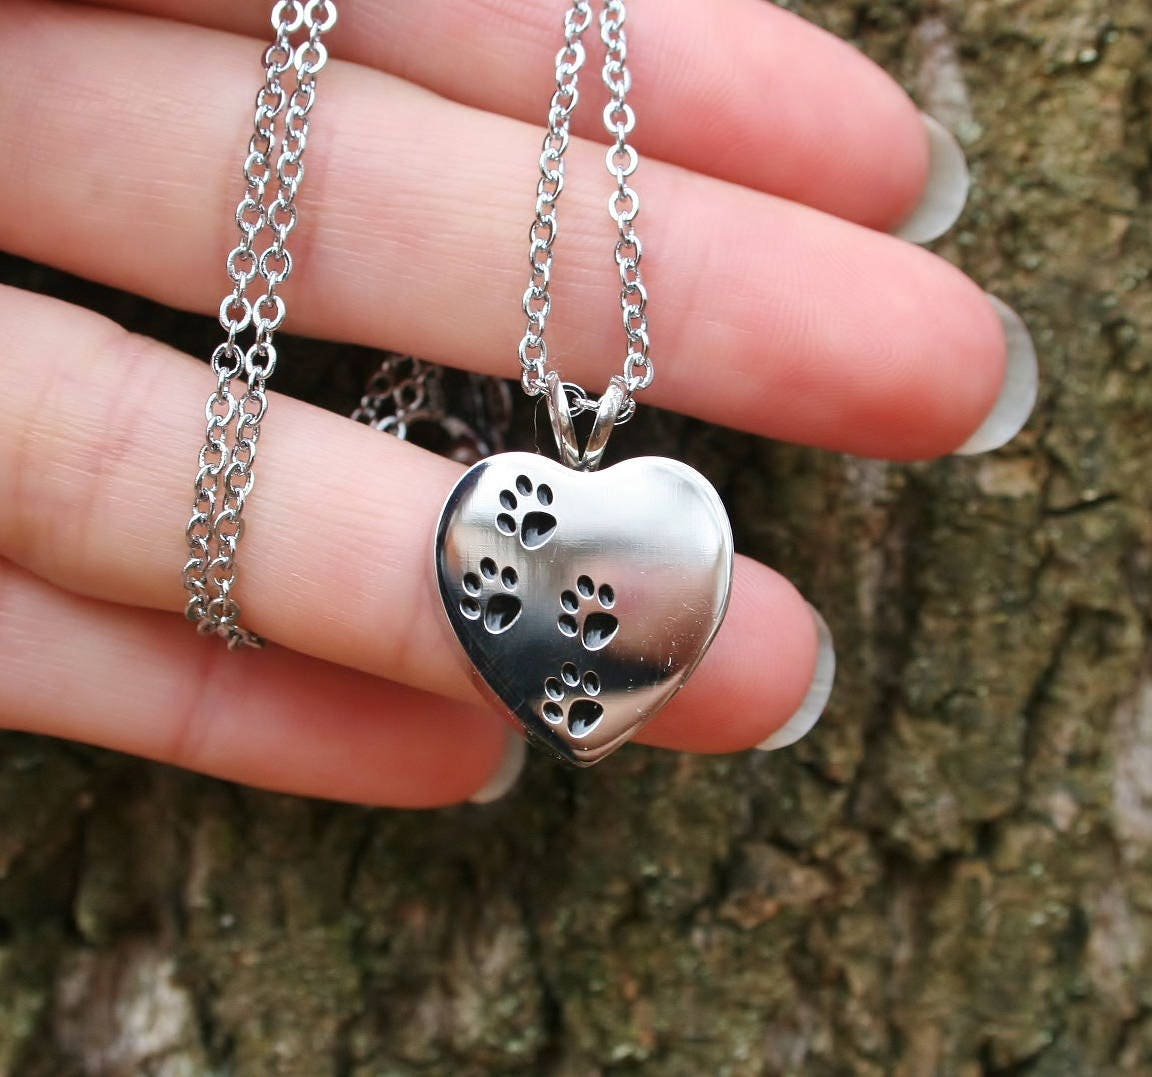 4 paws on my heart pet cremation jewelry for ashes urn for Cremation jewelry for pets ashes